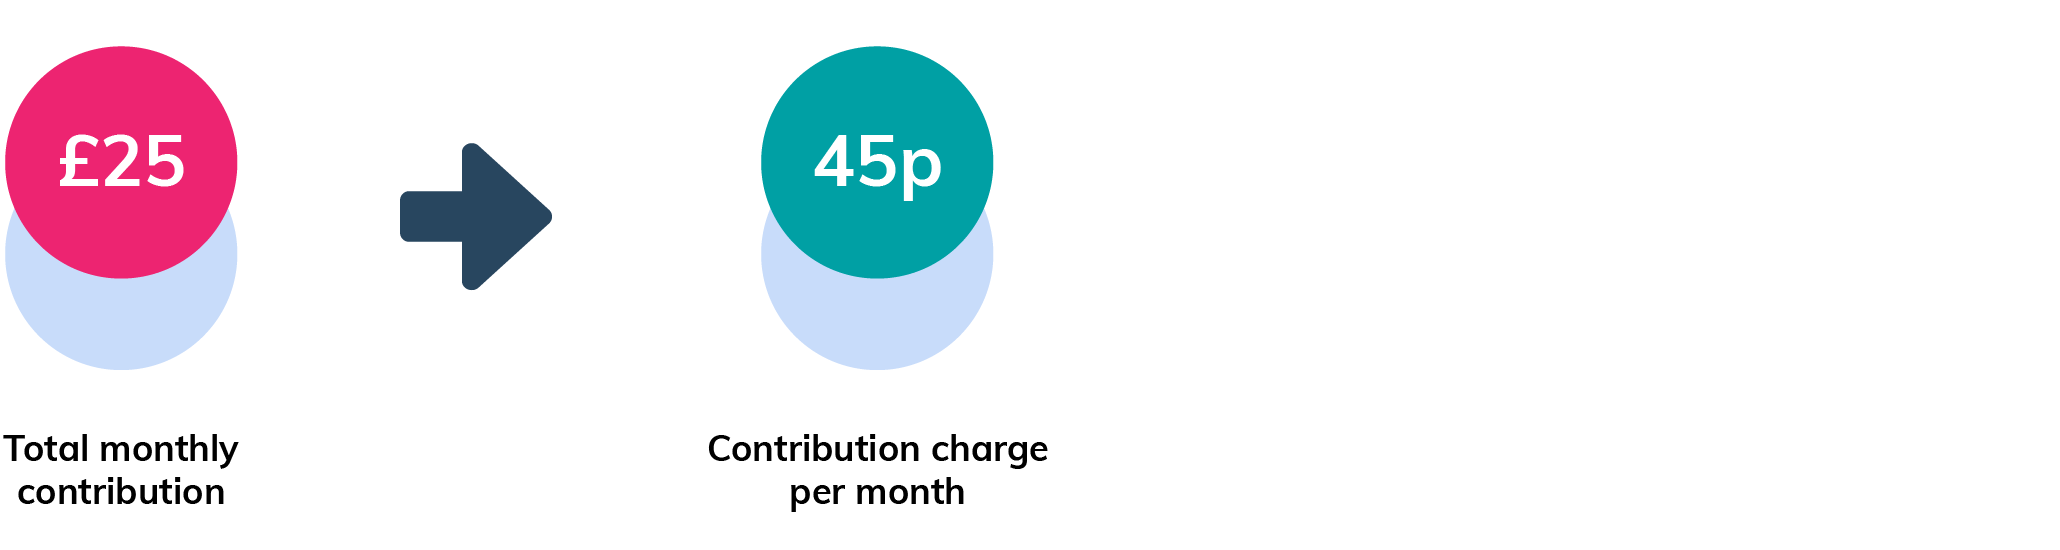 Example of a contribution charge